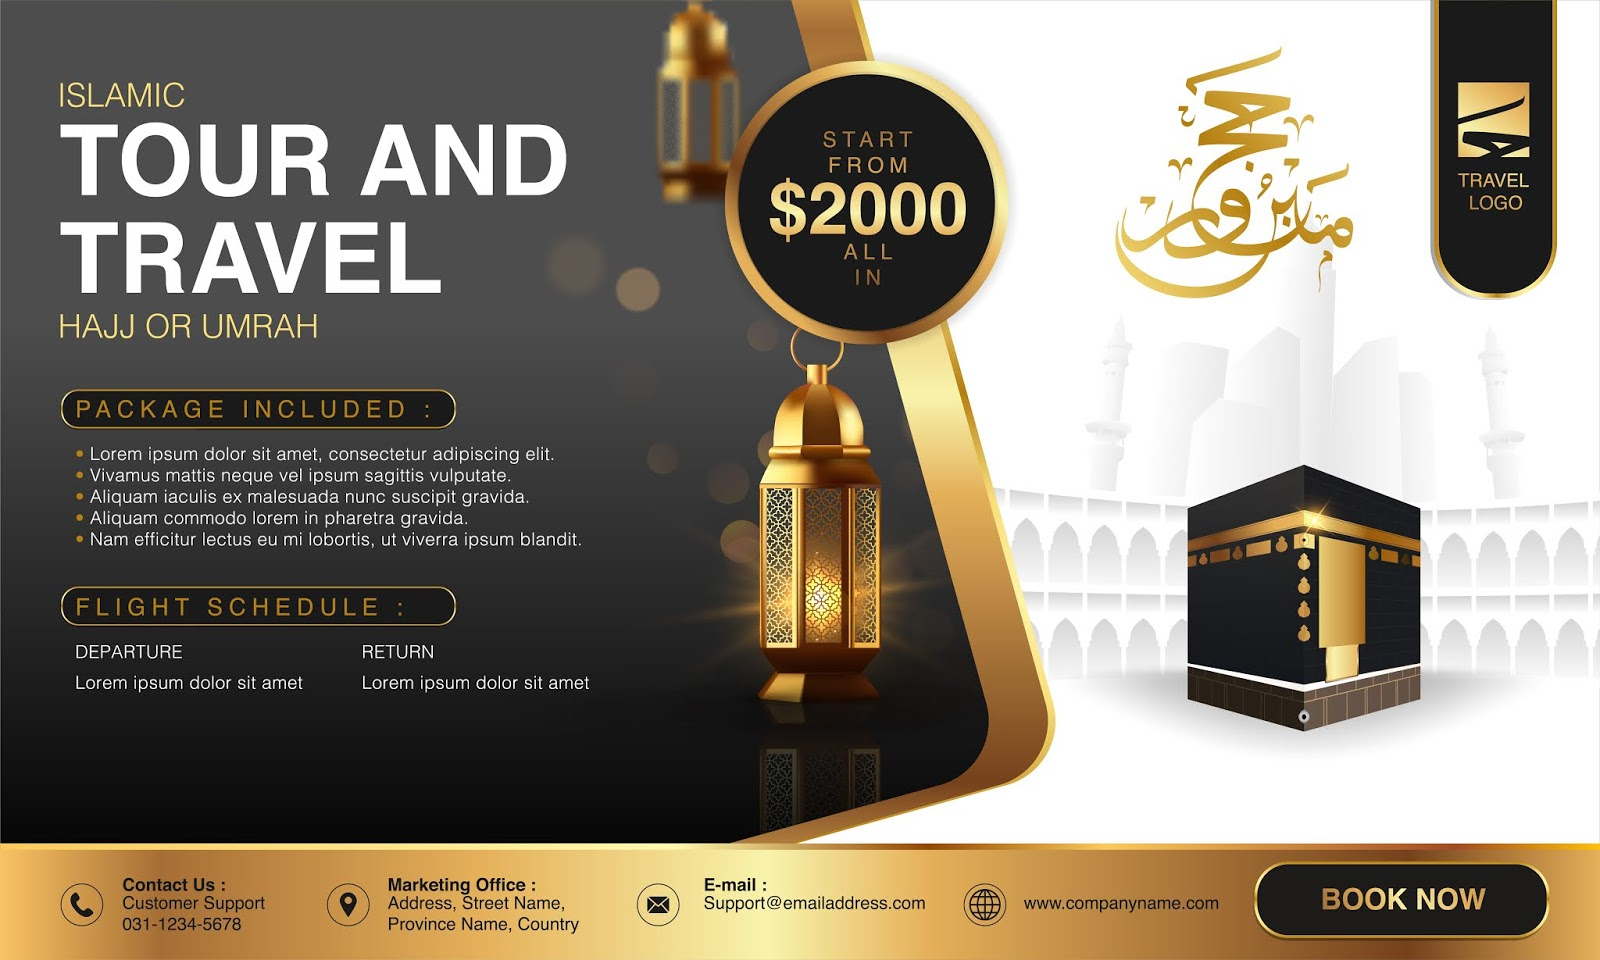 The most beautiful collection of Islamic designs, Hajj and Umrah, open source designs of the highest quality